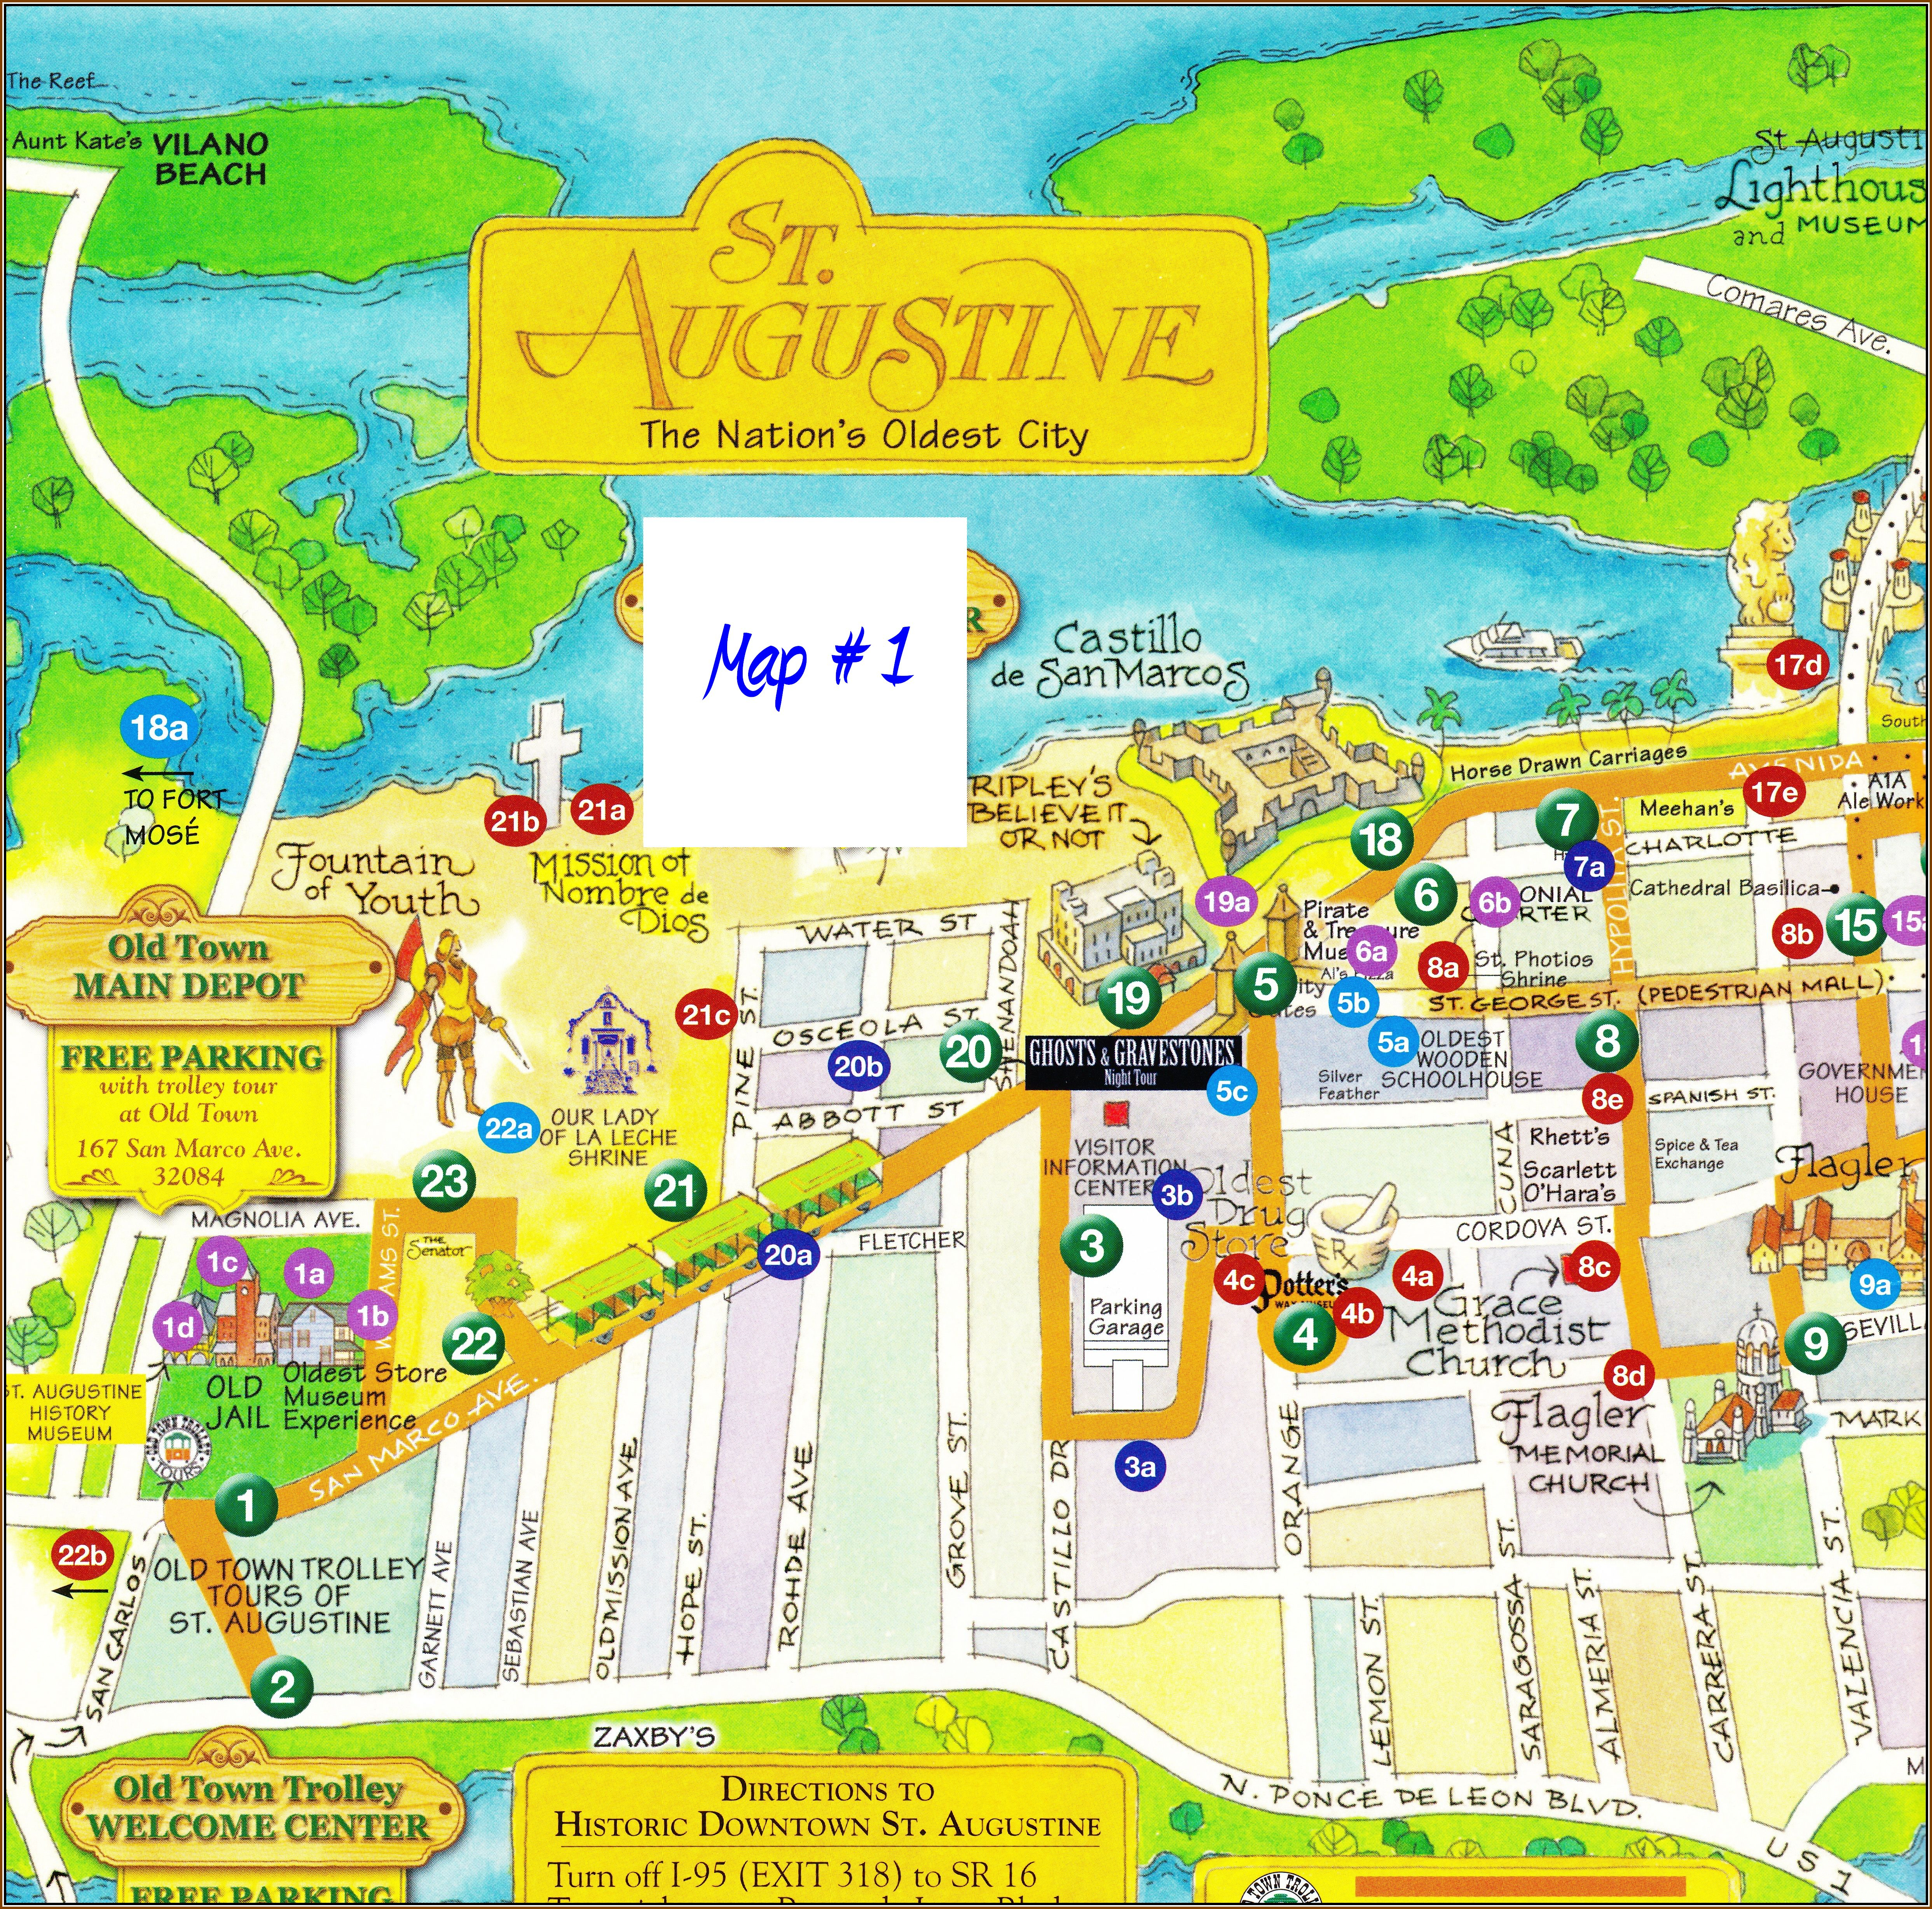 Map Of St Augustine Fl | World Map 07 - St Augustine Florida Map Of Attractions